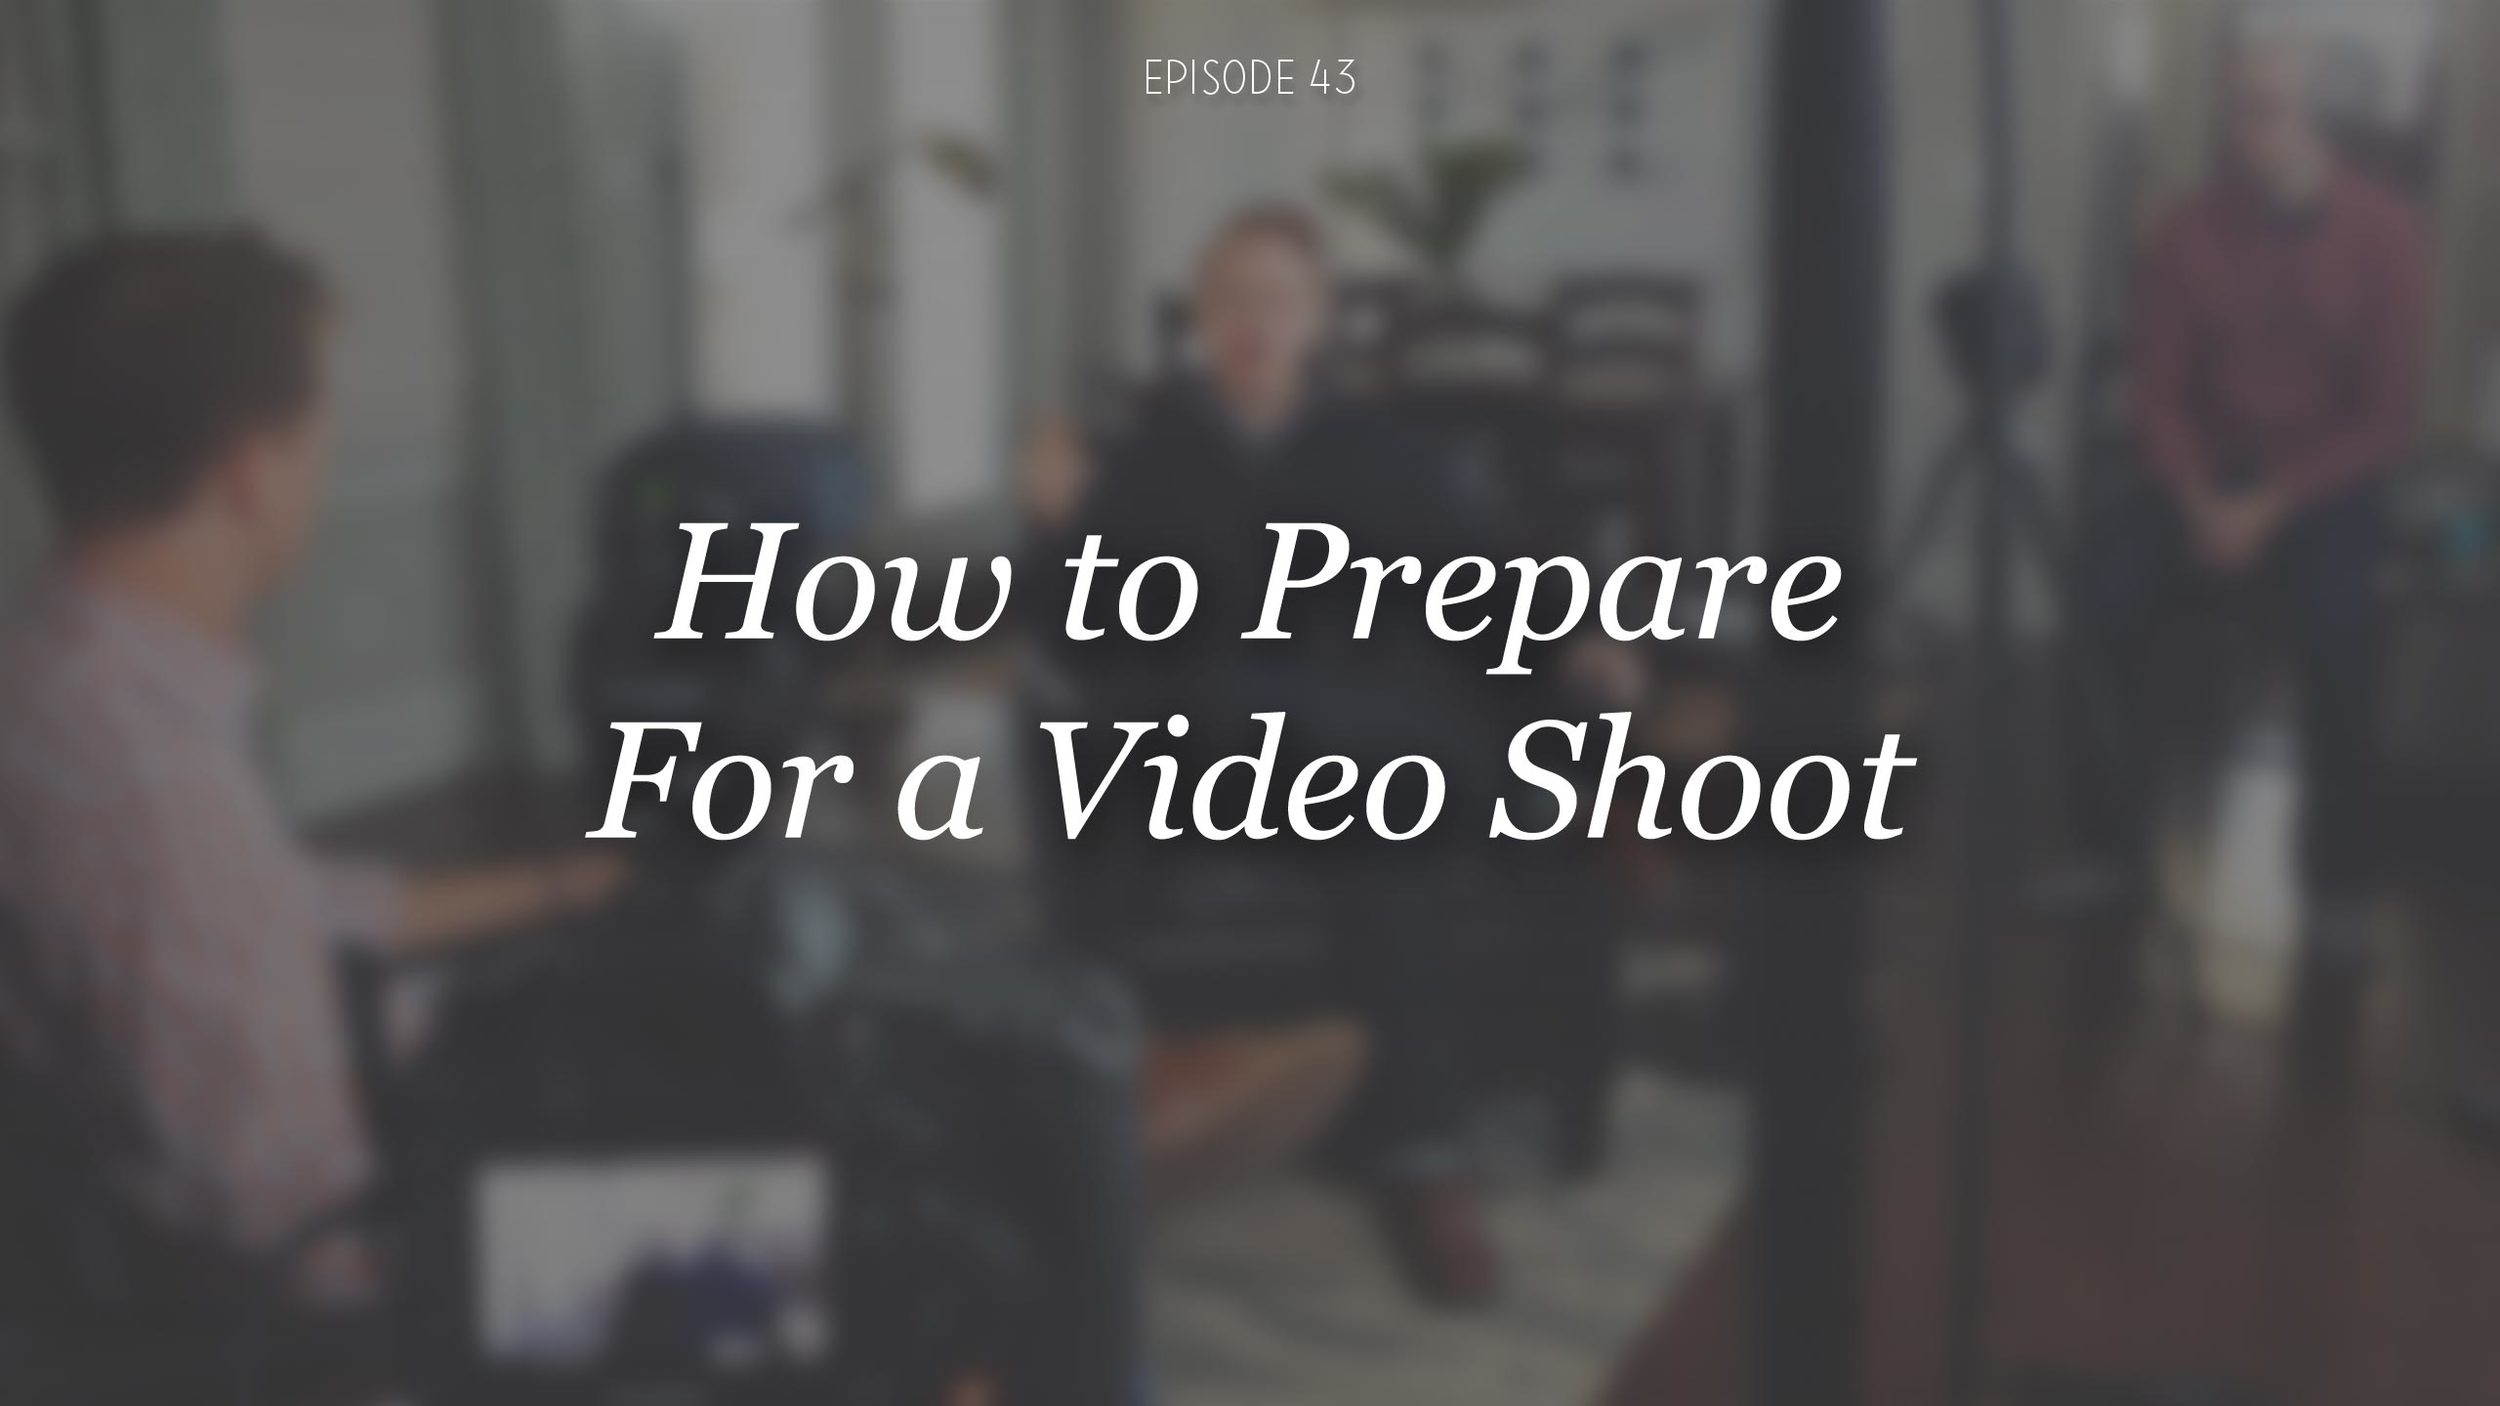 DVG-043-How-We-Prepare-for-a-Video-Shoot.jpg